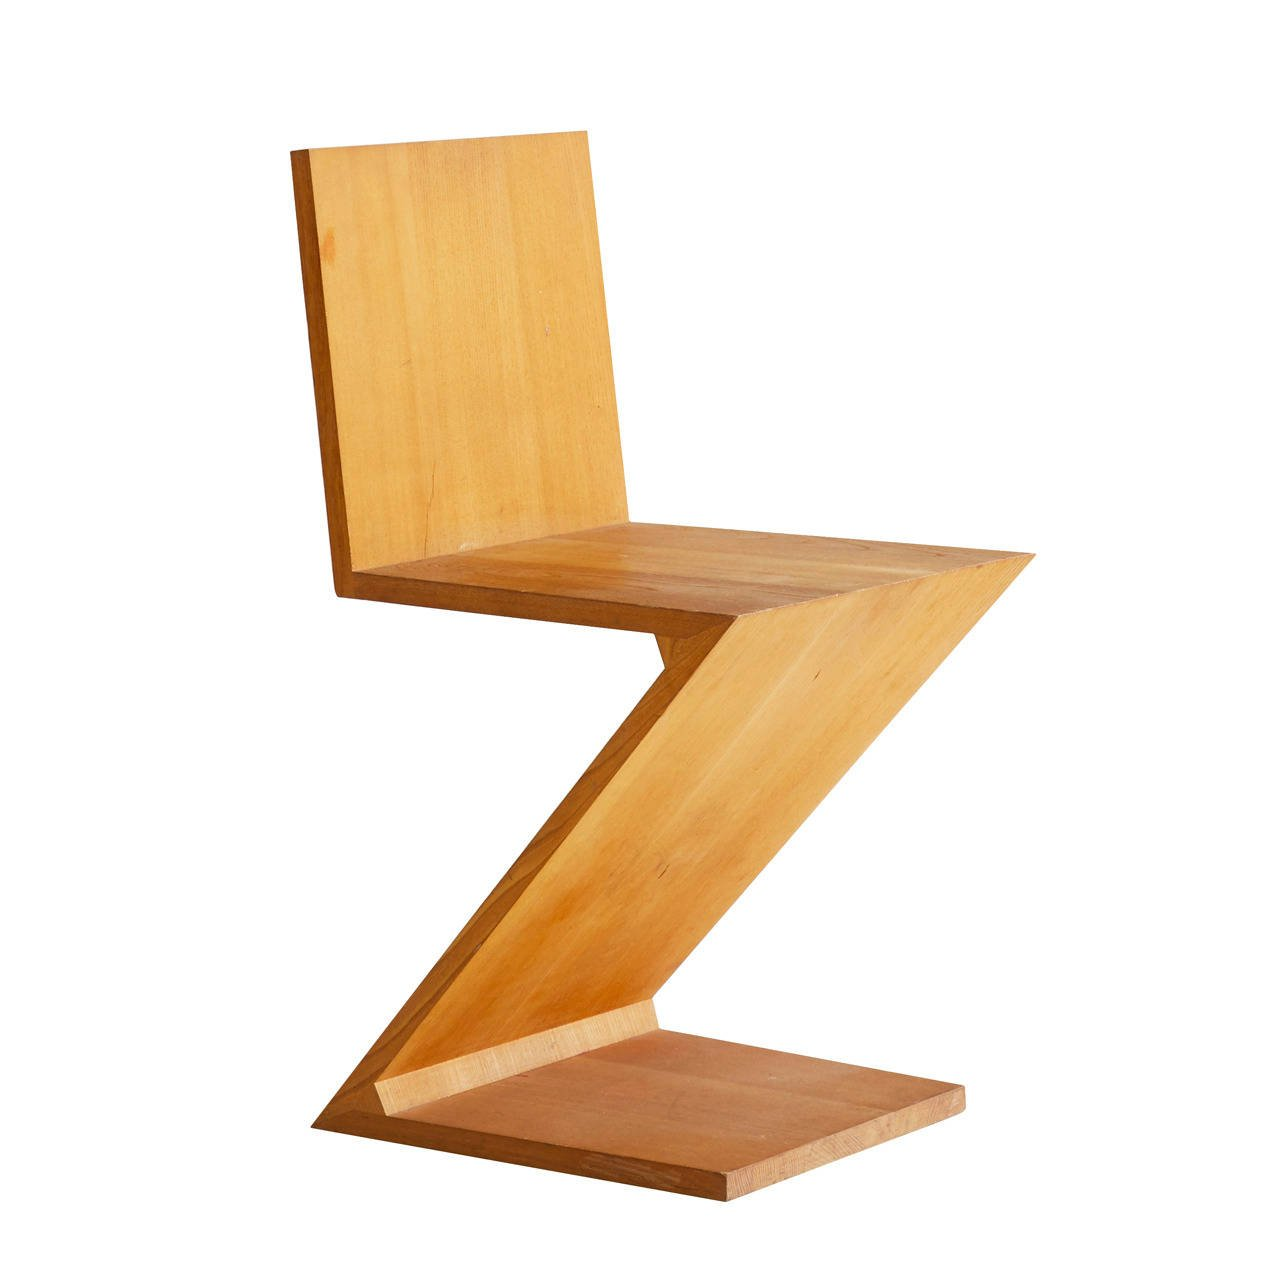 Gerrit Rietveld Zig Zag Chair From A Unique Collection Of Antique And Modern Chairs At Https Www 1stdibs Com Furniture Seatin Zigzag Chairs Chair Diy Chair